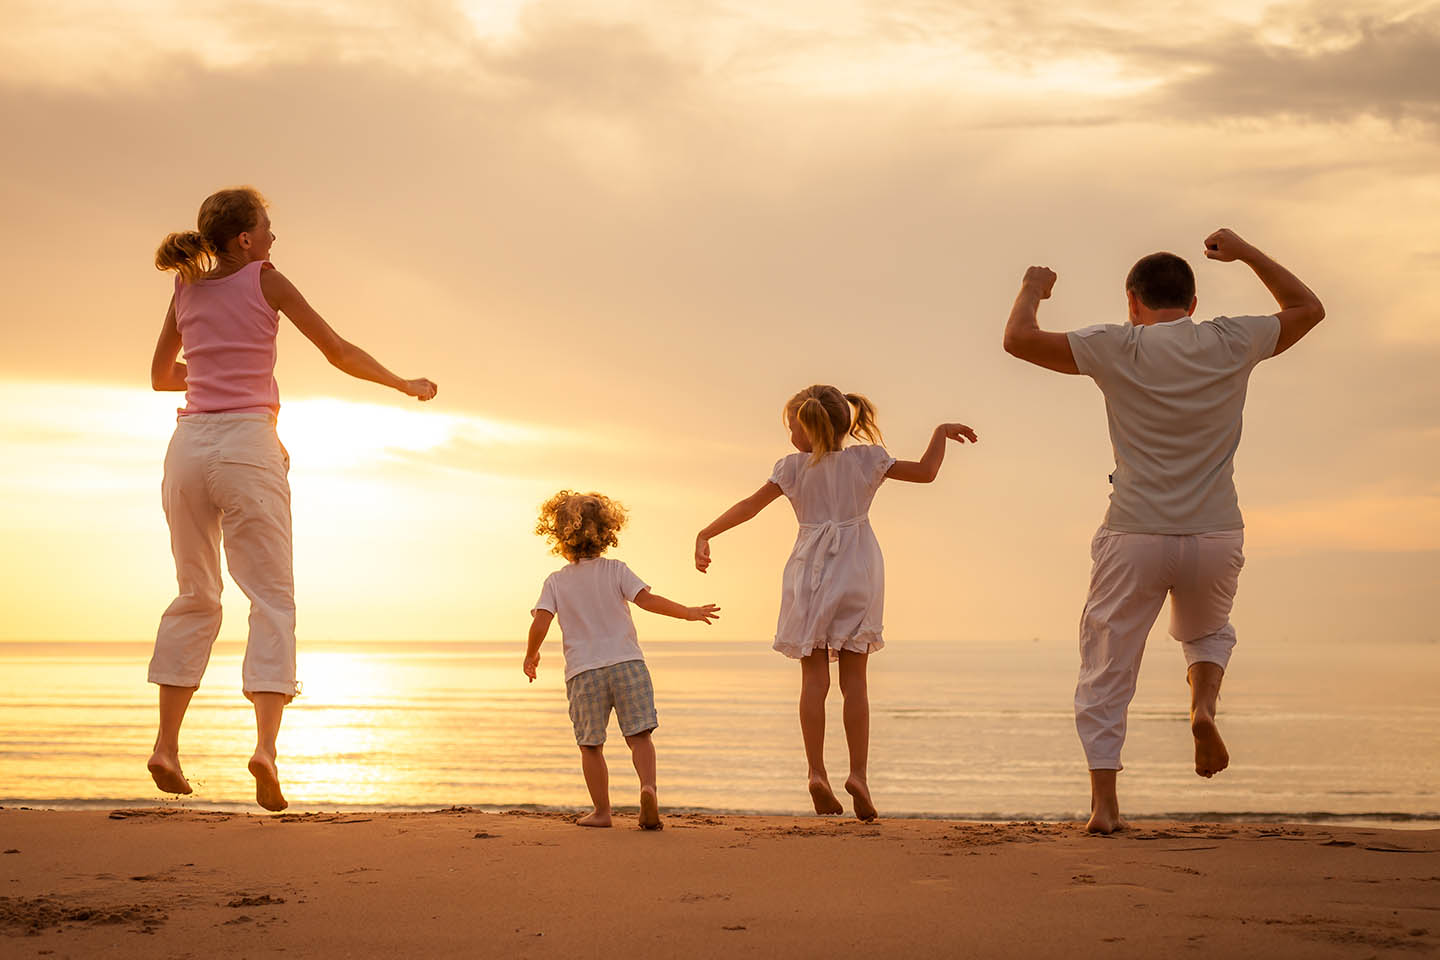 Family of four jumping on the beach at sunset